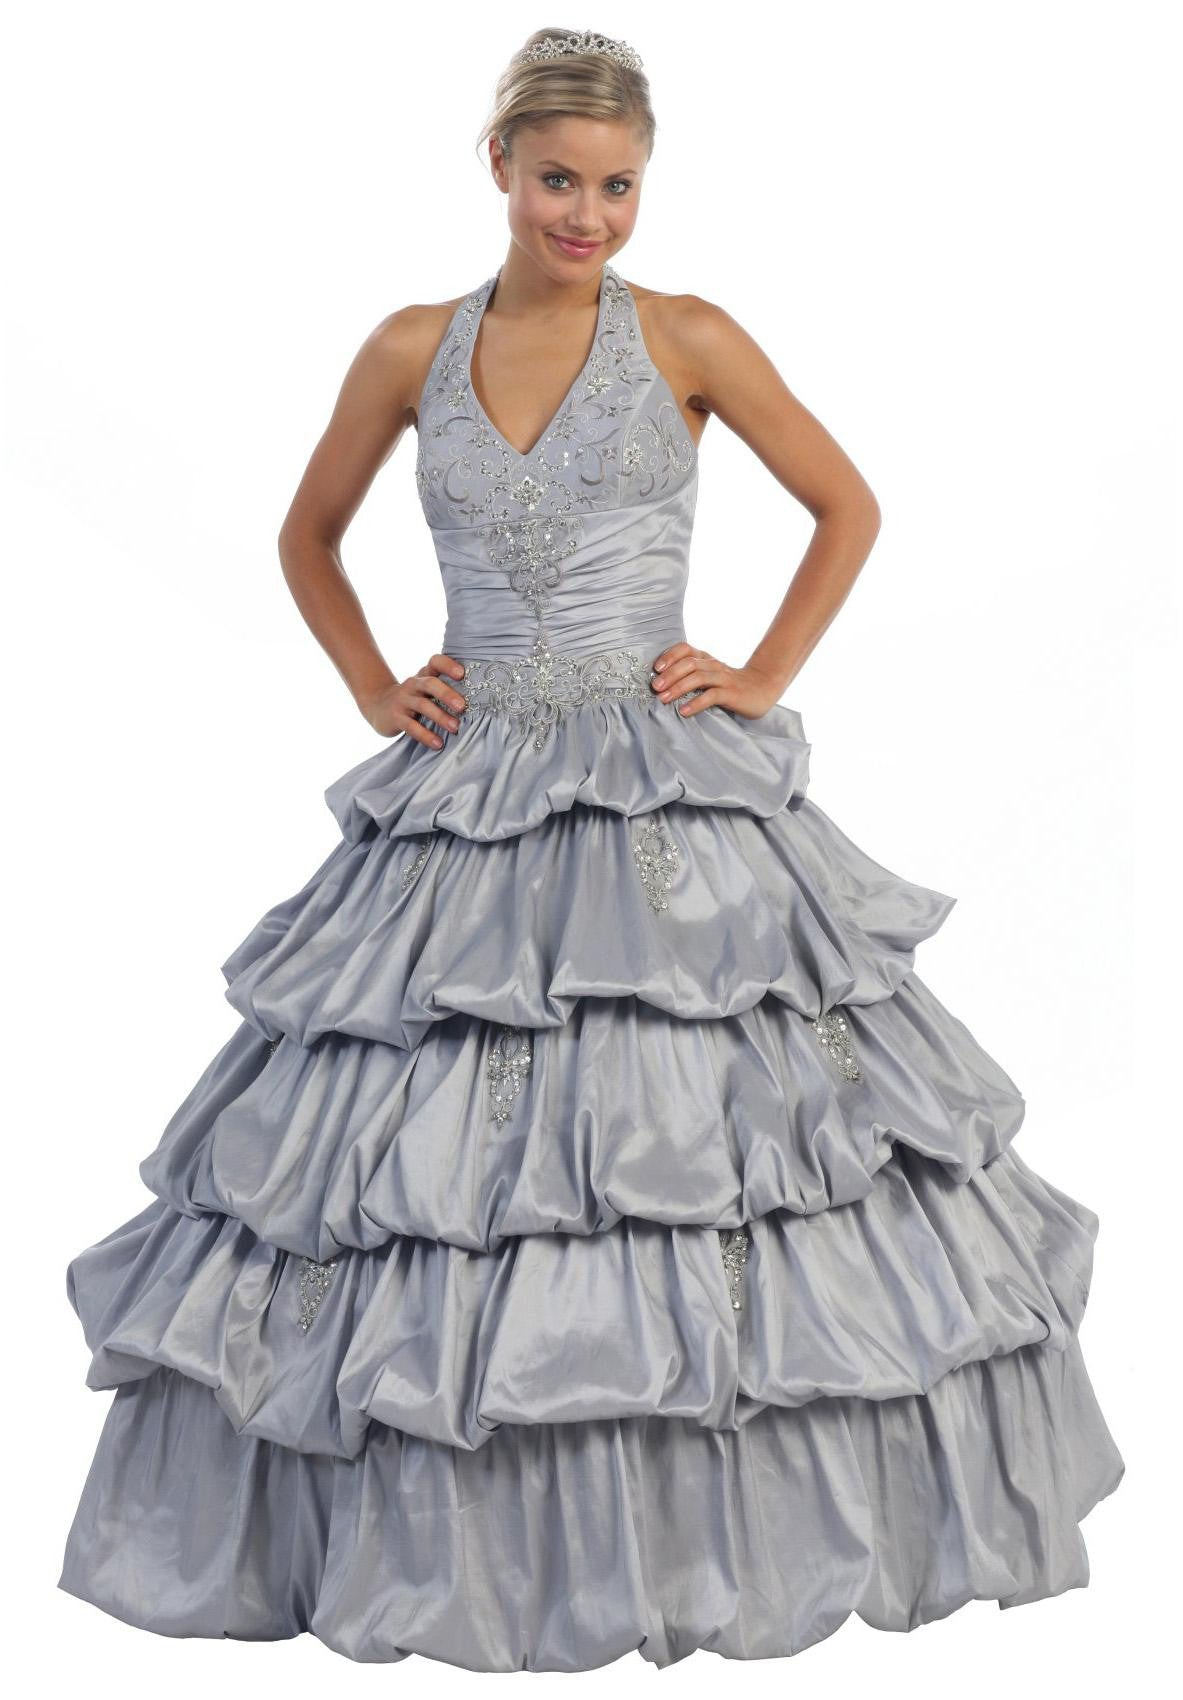 a116e975d10 Long Poofy Silver Cinderella Dress Strapless Quinceanera Puffy Gown ...